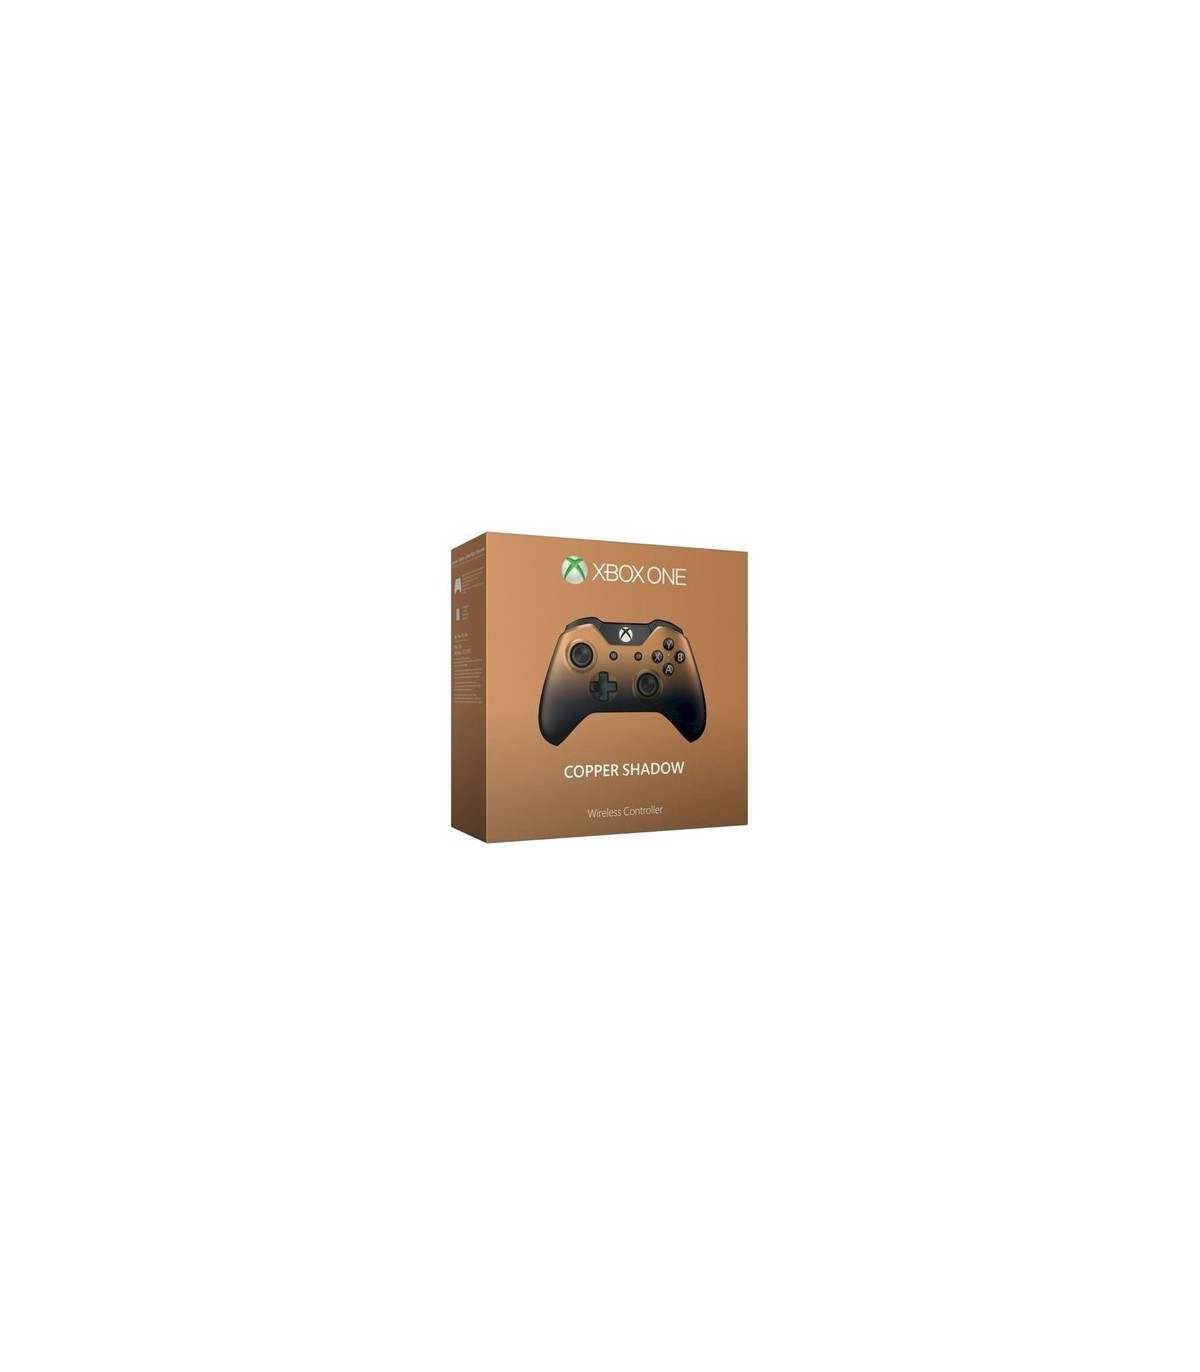 Xbox One Special Edition Copper Shadow